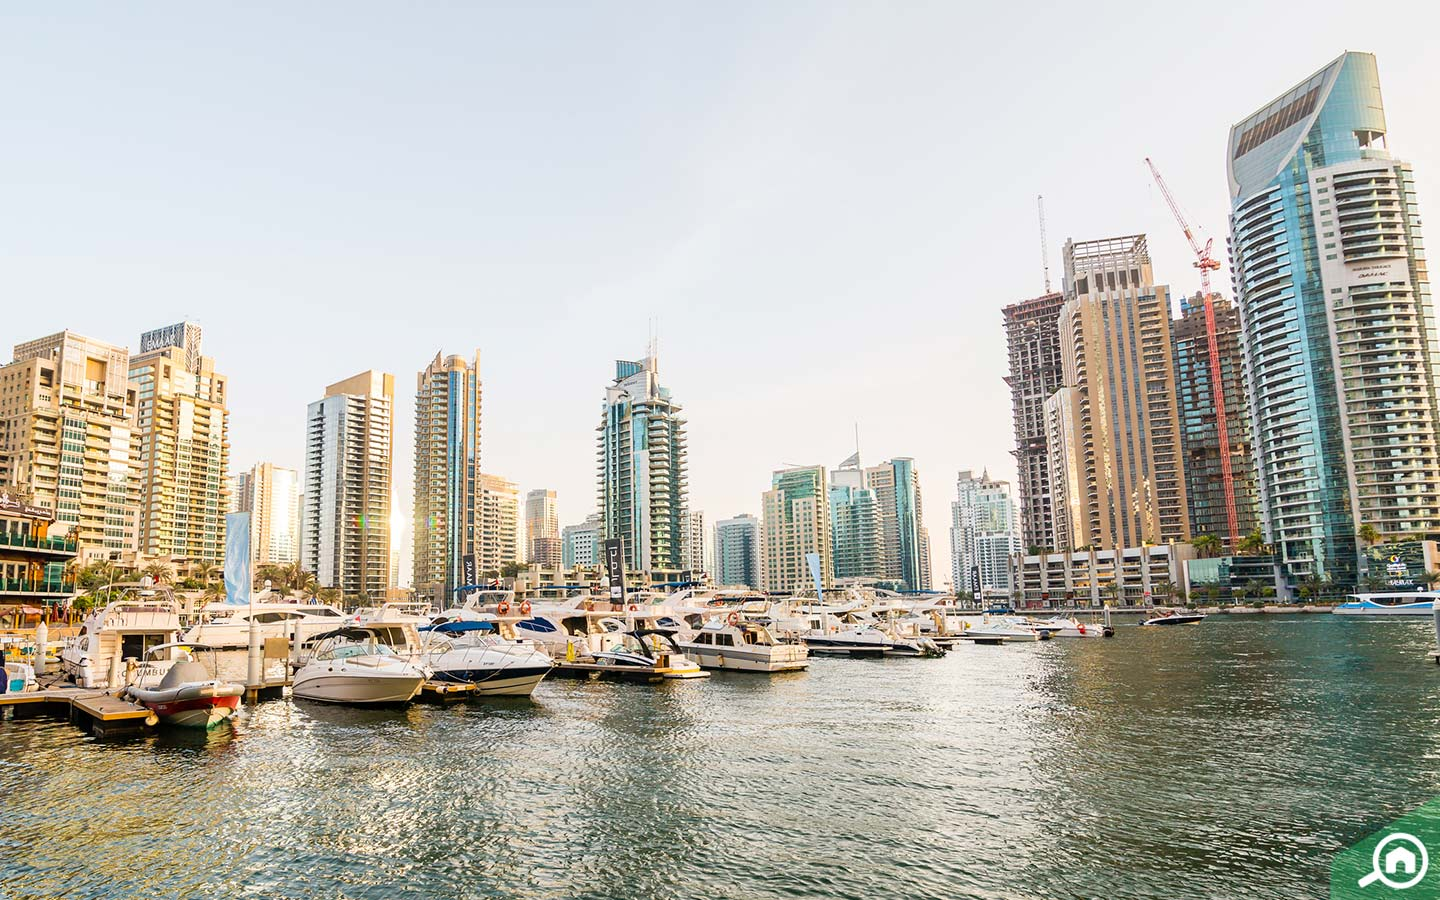 View of buildings and marina in Dubai Marina